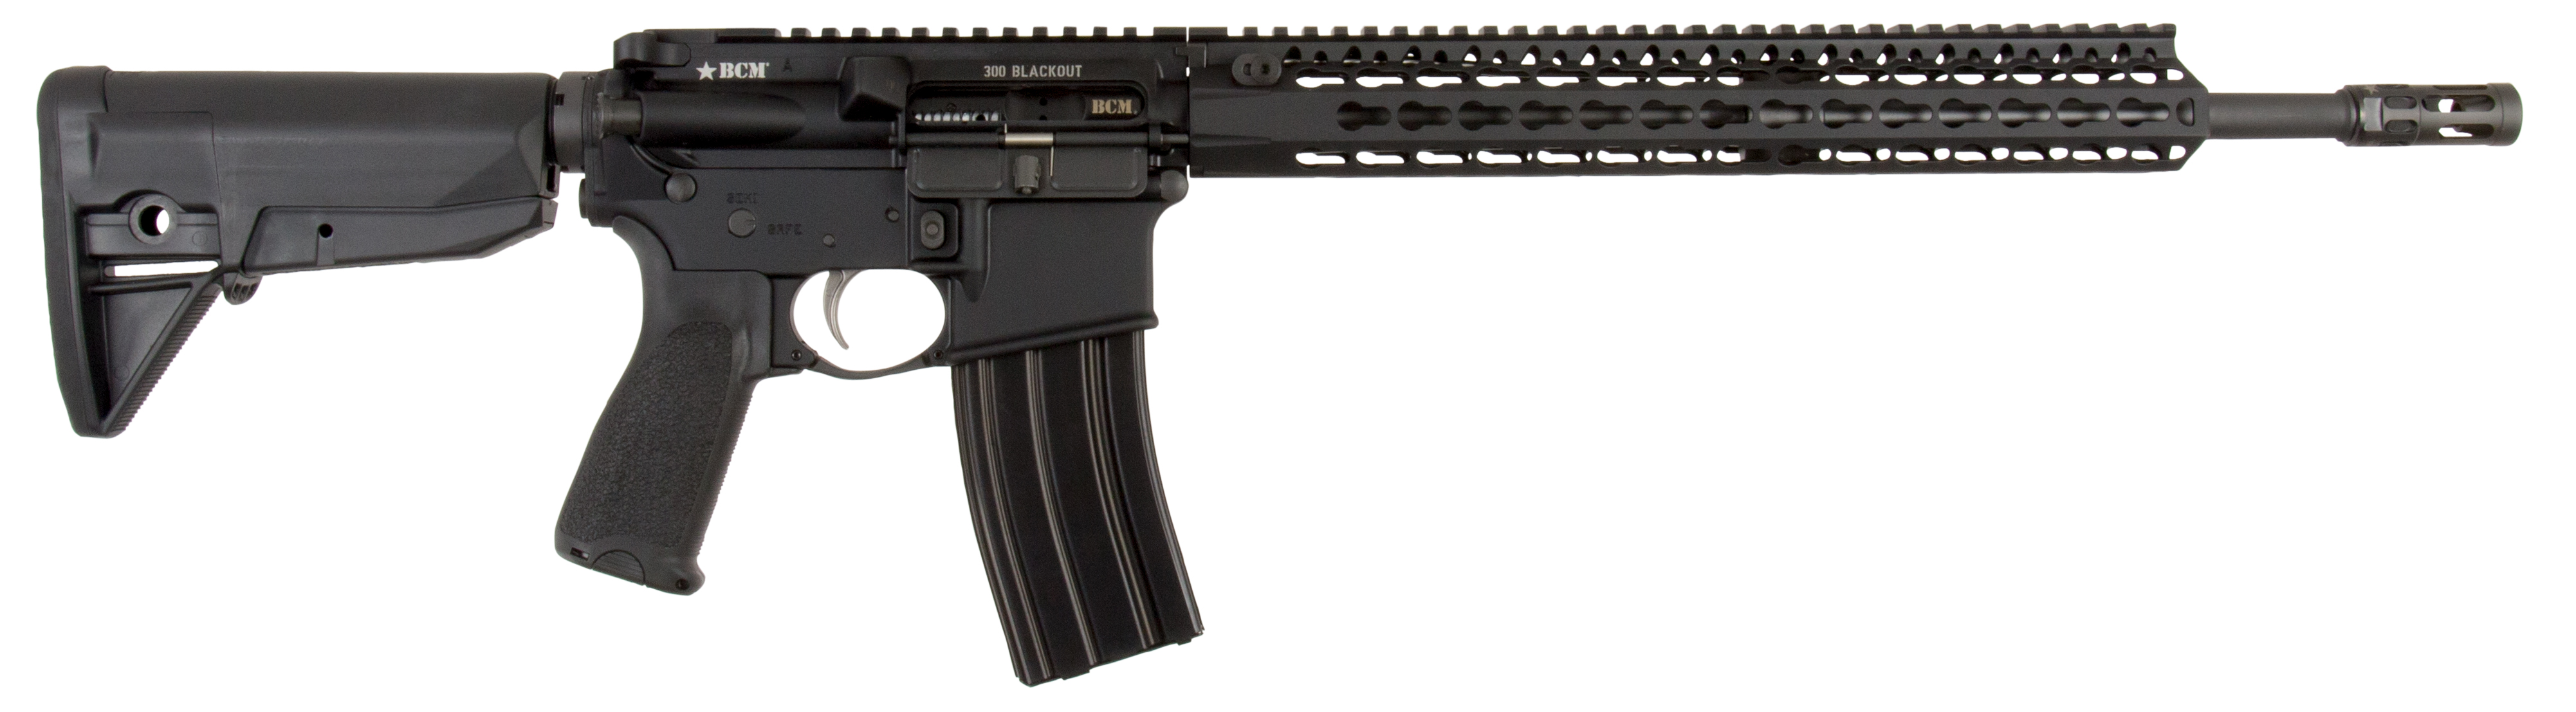 BCM REECE-16 KMR 300 Blackout 16